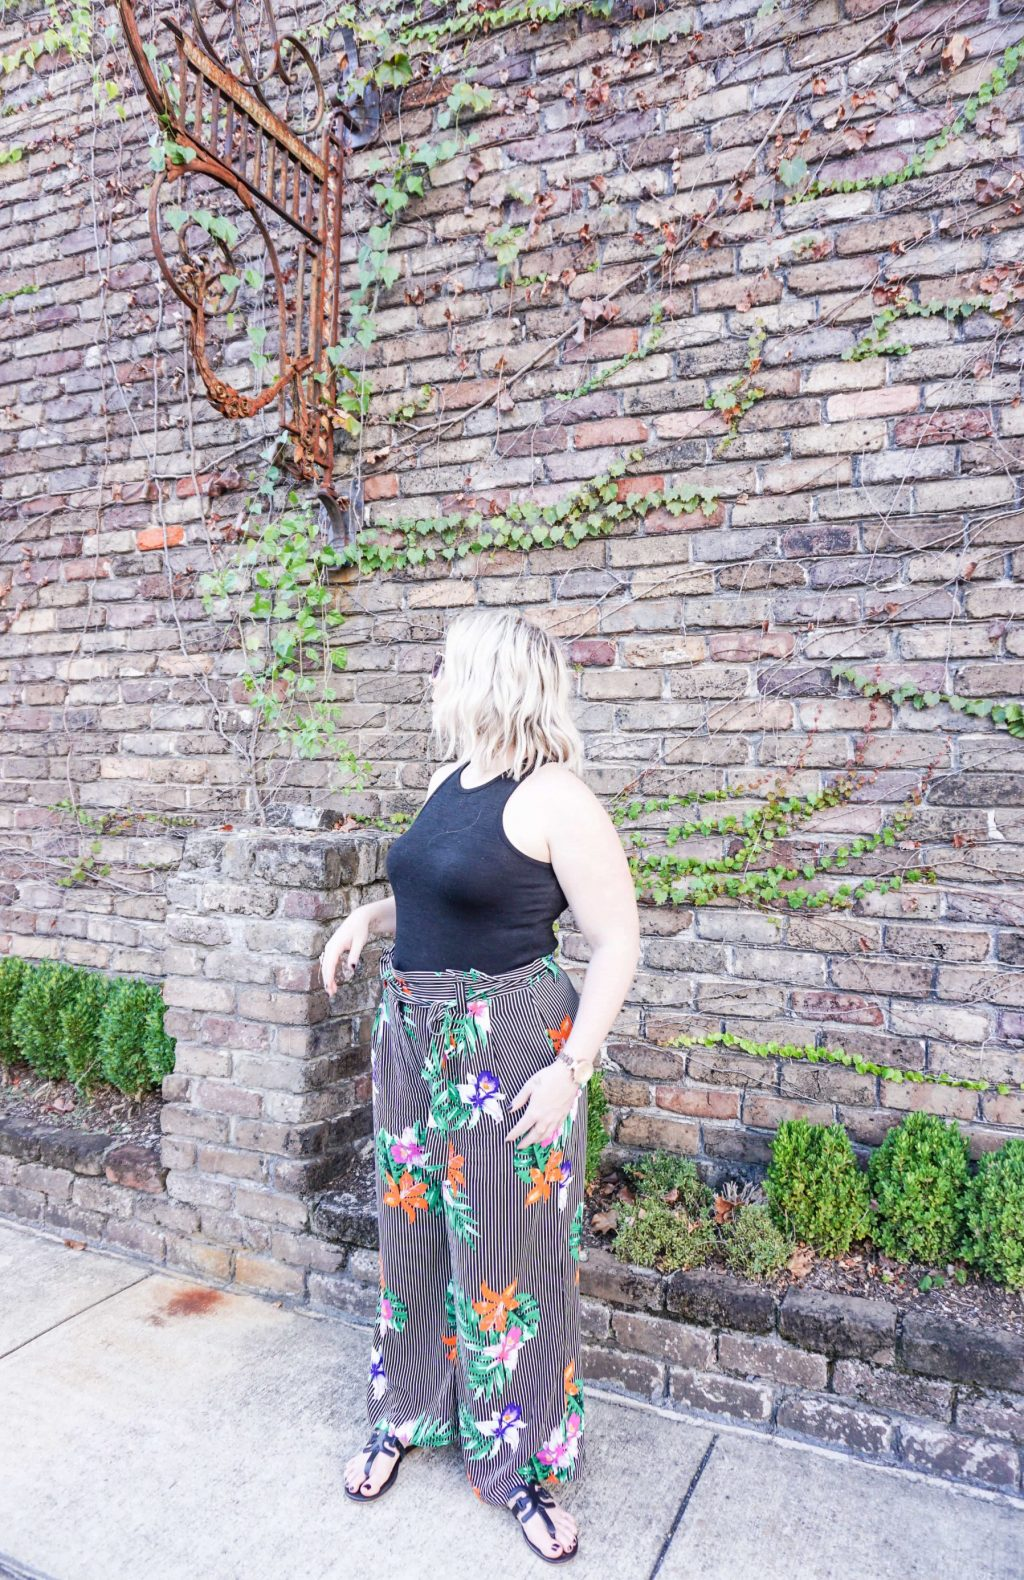 How I'm Staying On Track With My Fitness Goals #whatsavvysaid #wellness #fitness #birminghamal #continentialbakery #mountainbrook #englishvillage #alabama